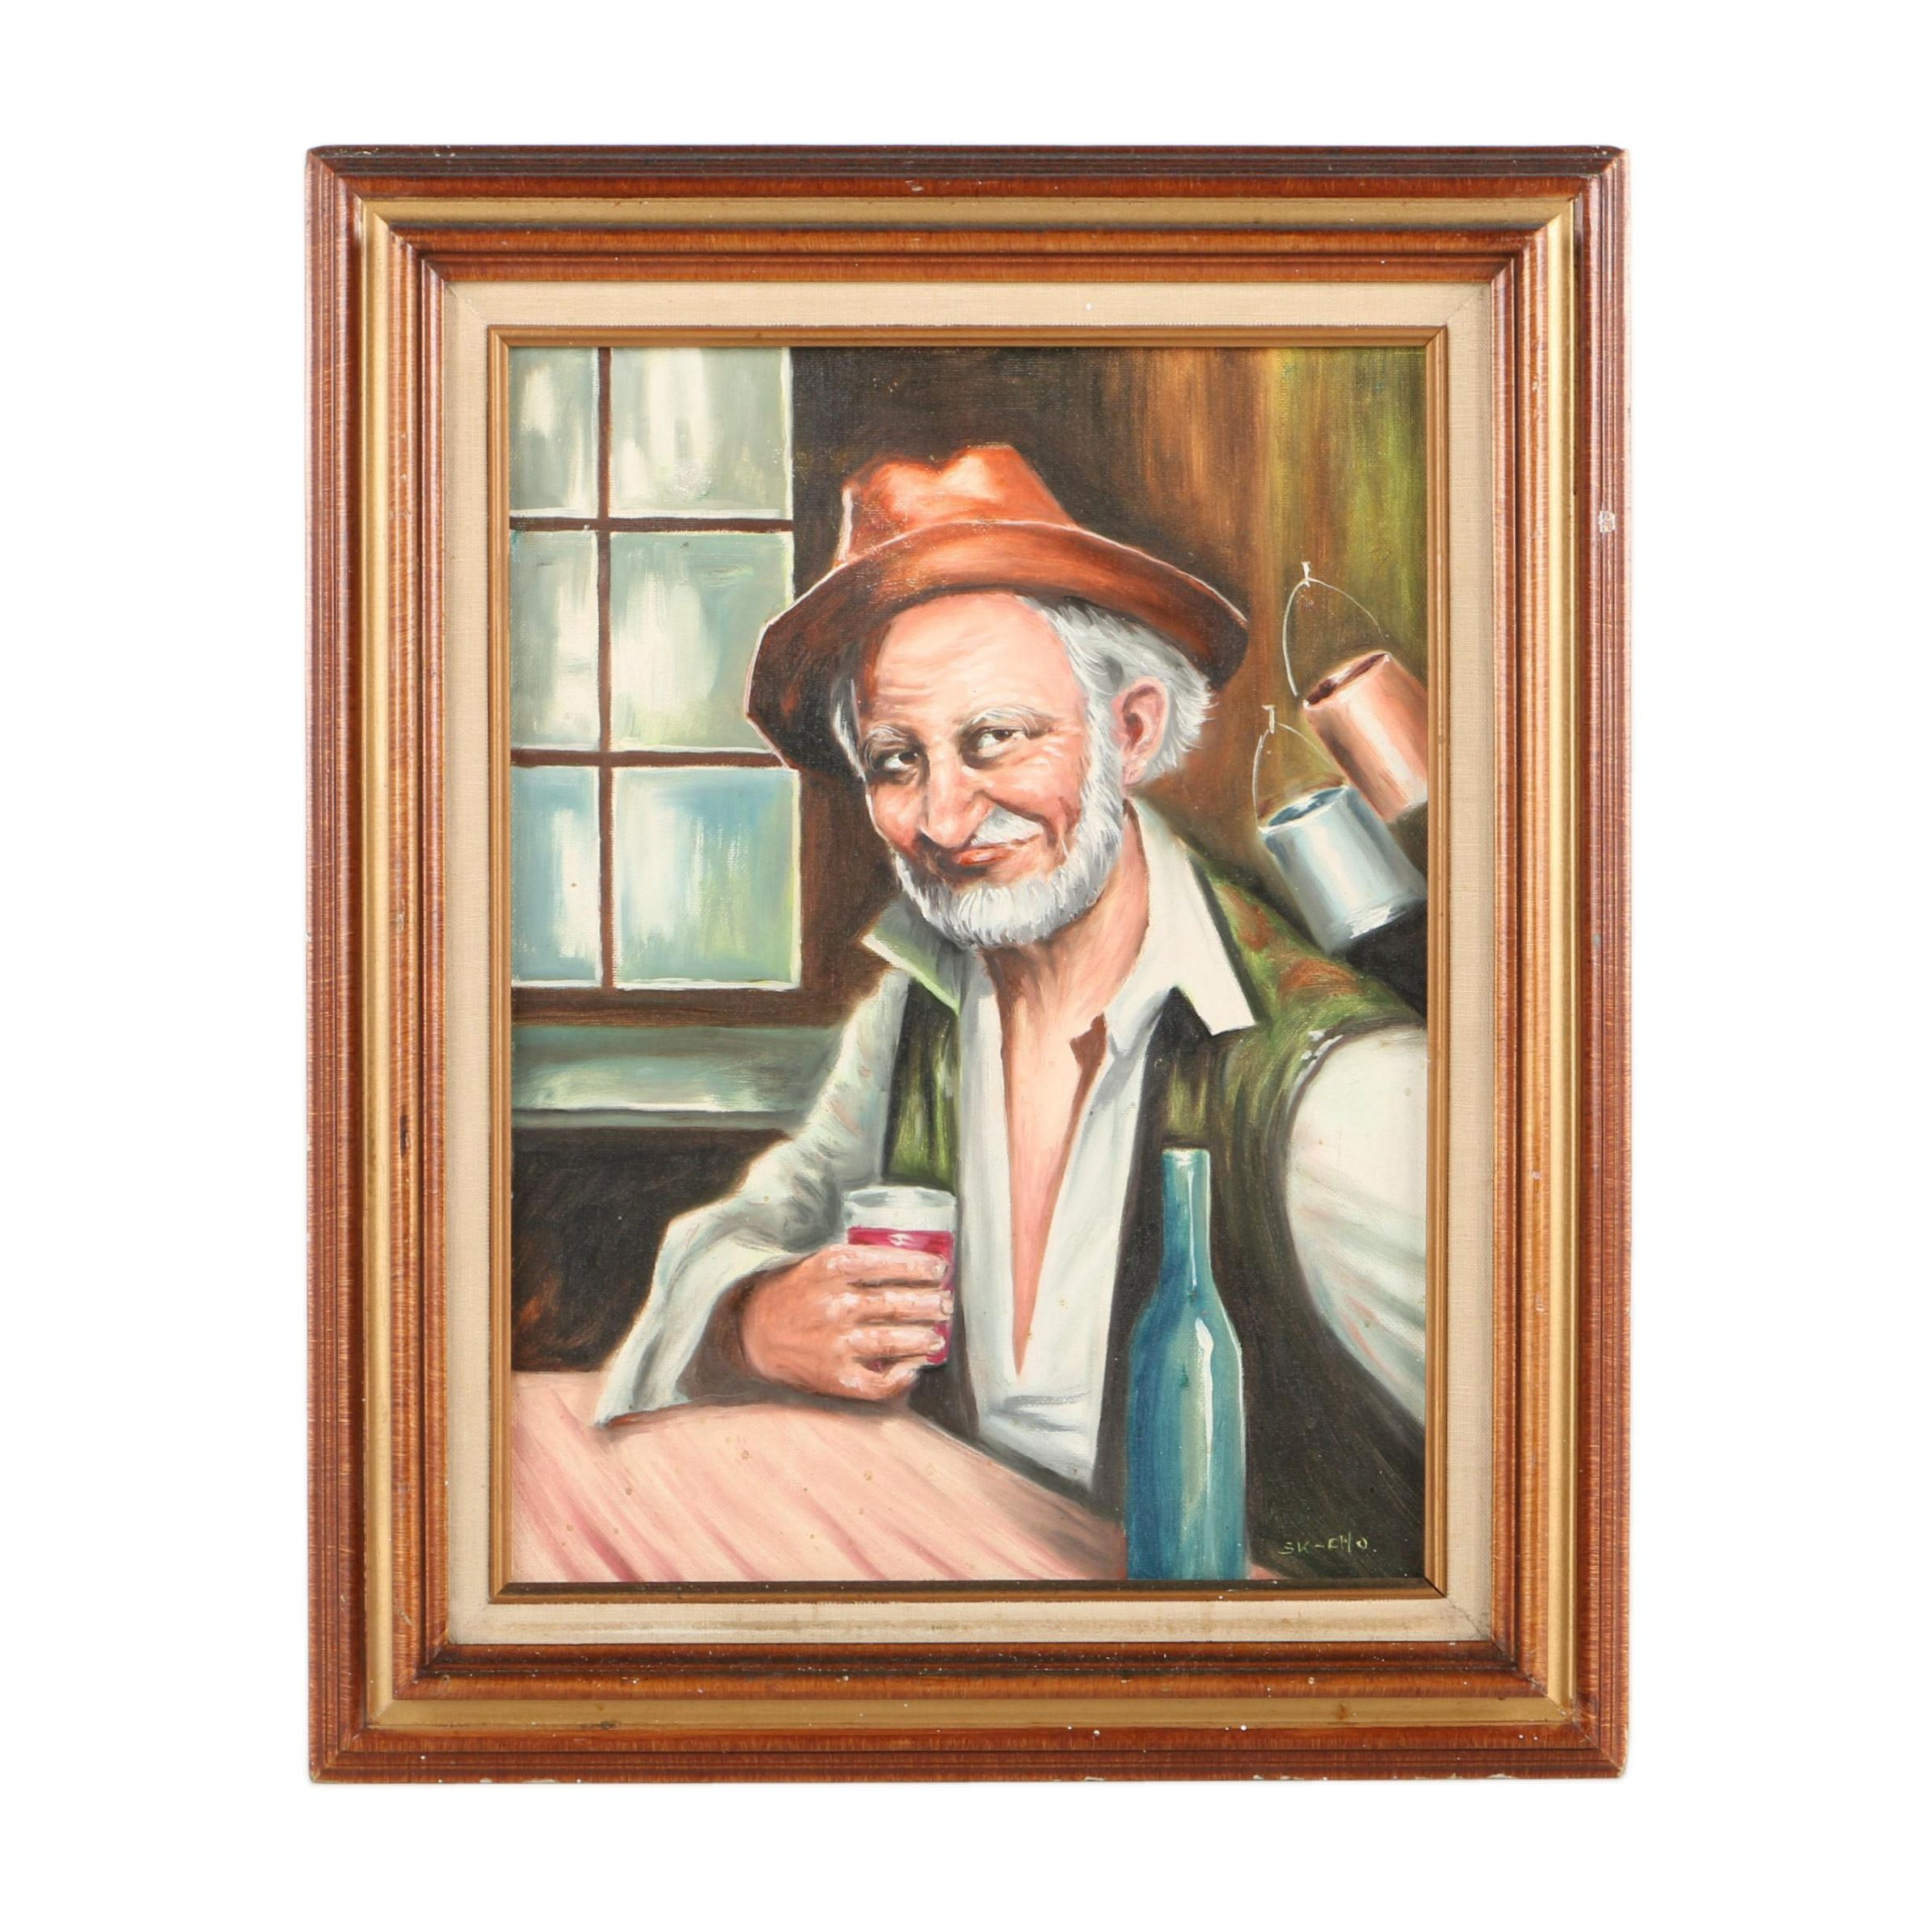 Oil Painting on Canvas Board of Elderly Man with Drink